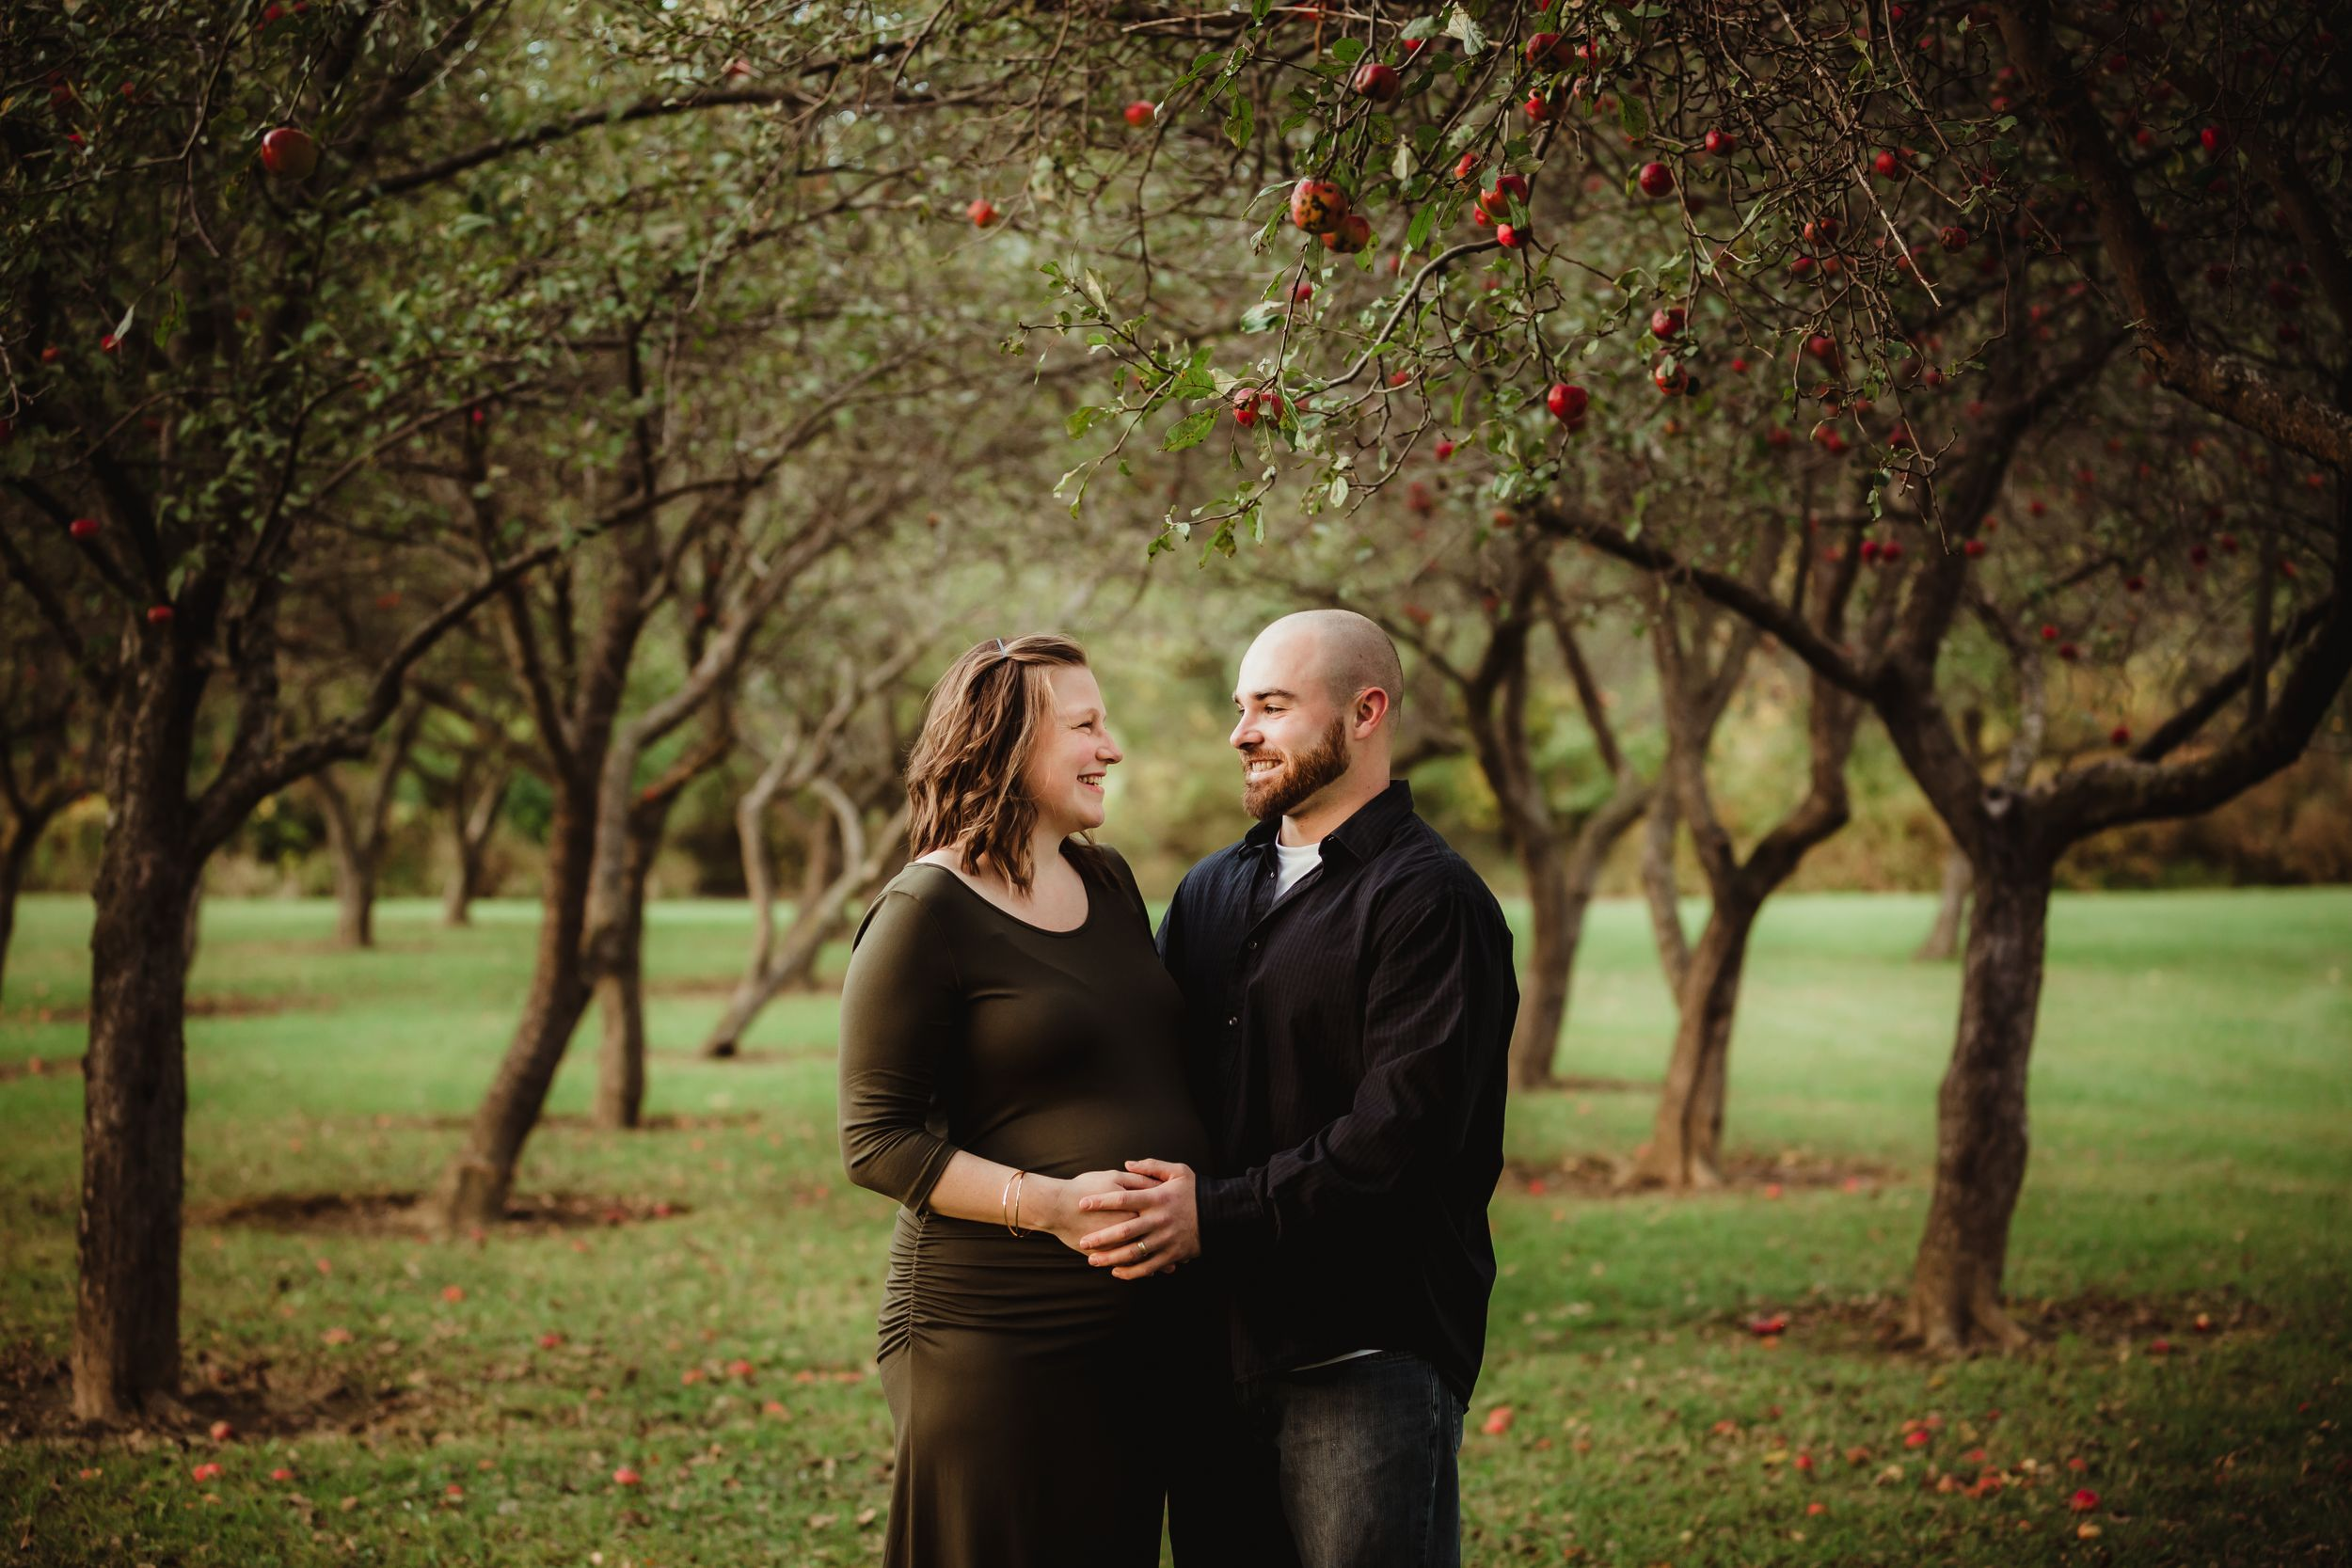 Pregnant woman and her husband smiling at each other standing between rows of apple trees.